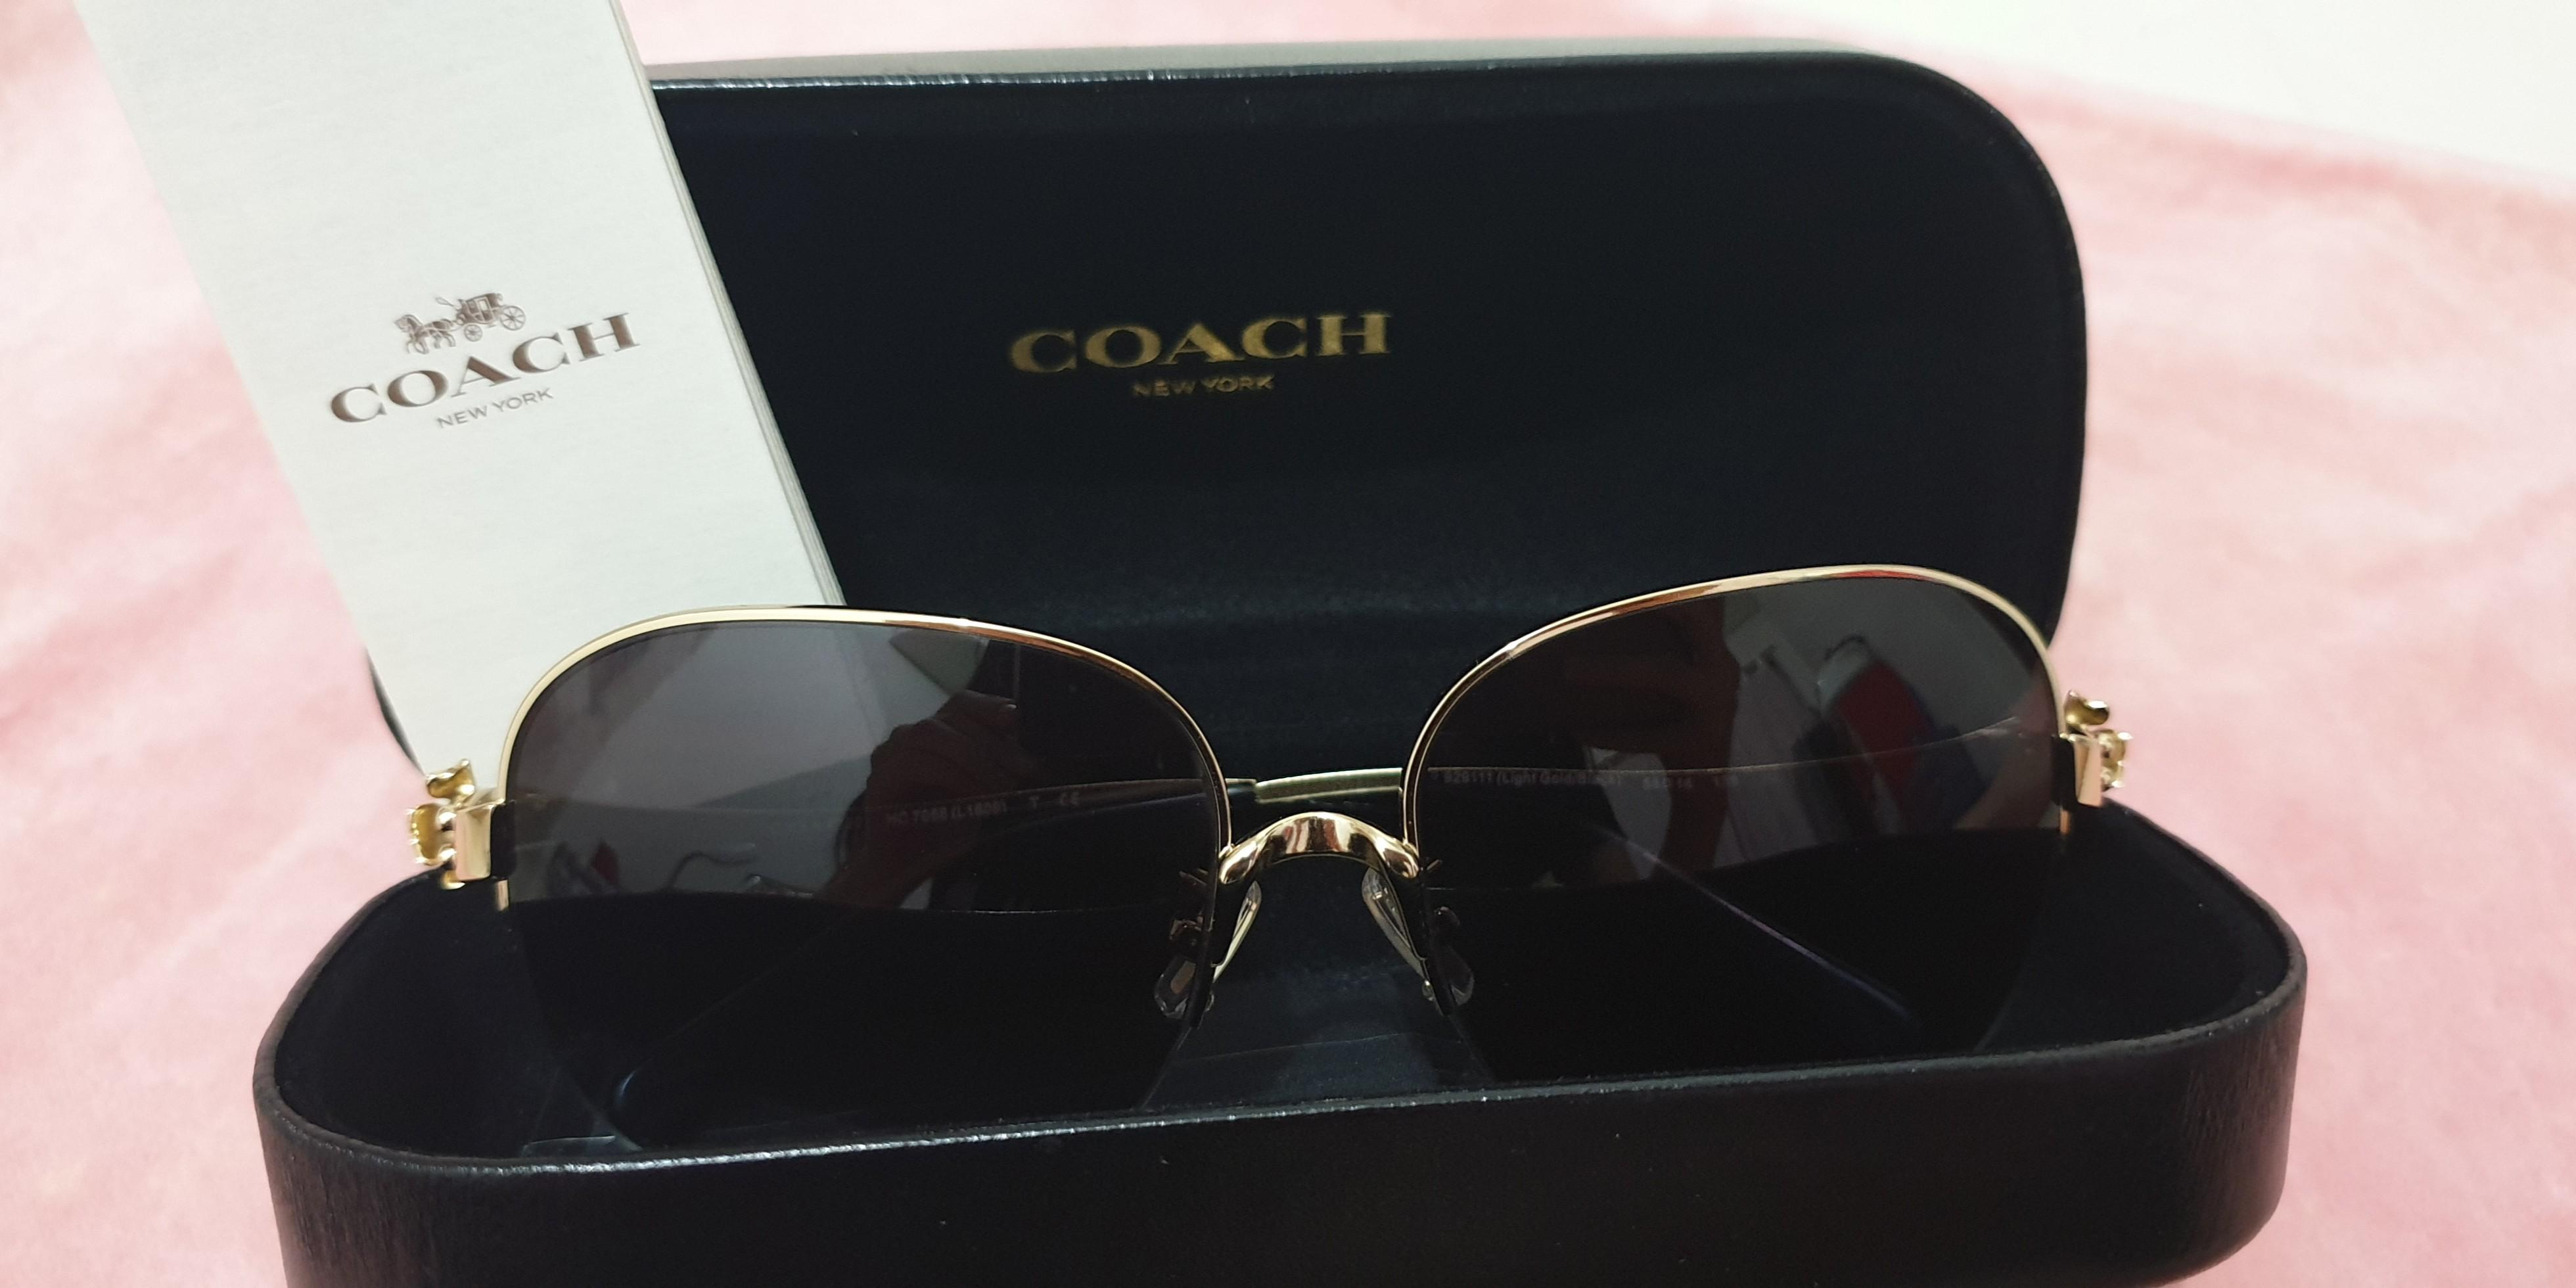 Coach sunglasses / kacamata coach